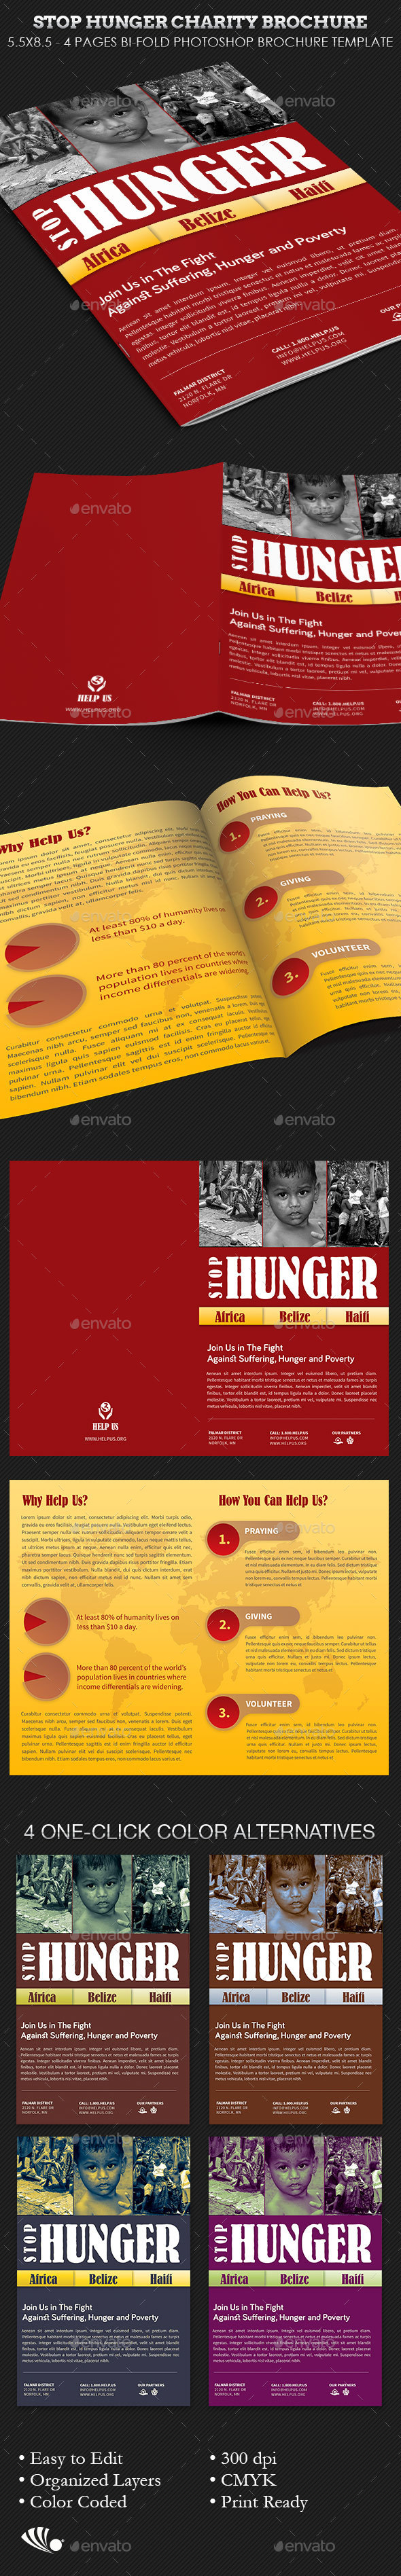 Stop hunger charity brochure template by 4cgraphic for Informational brochure templates